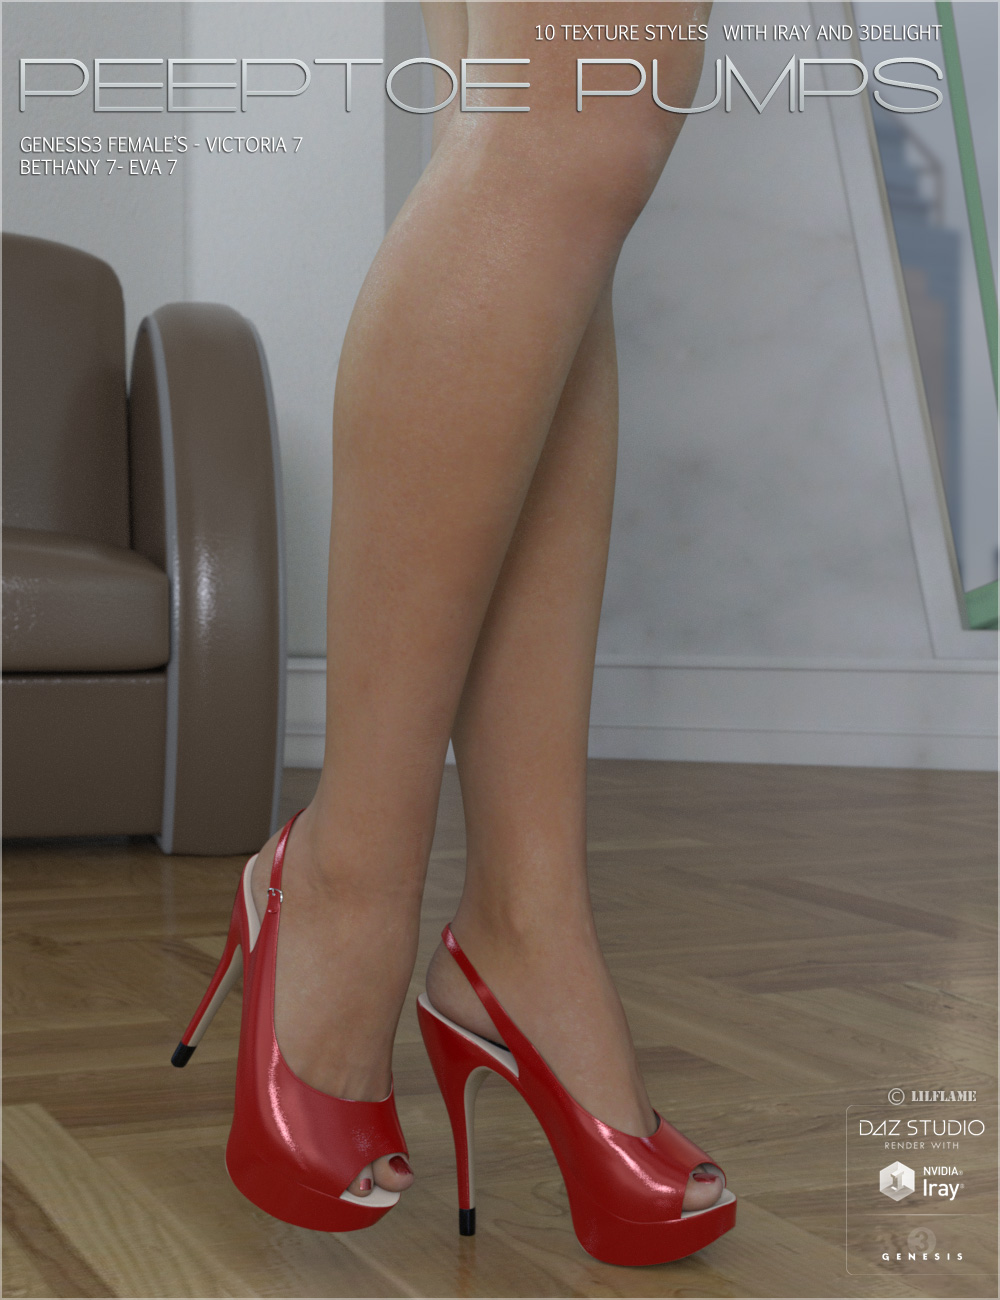 Peeptoe Pumps for Genesis 3 Females by lilflame